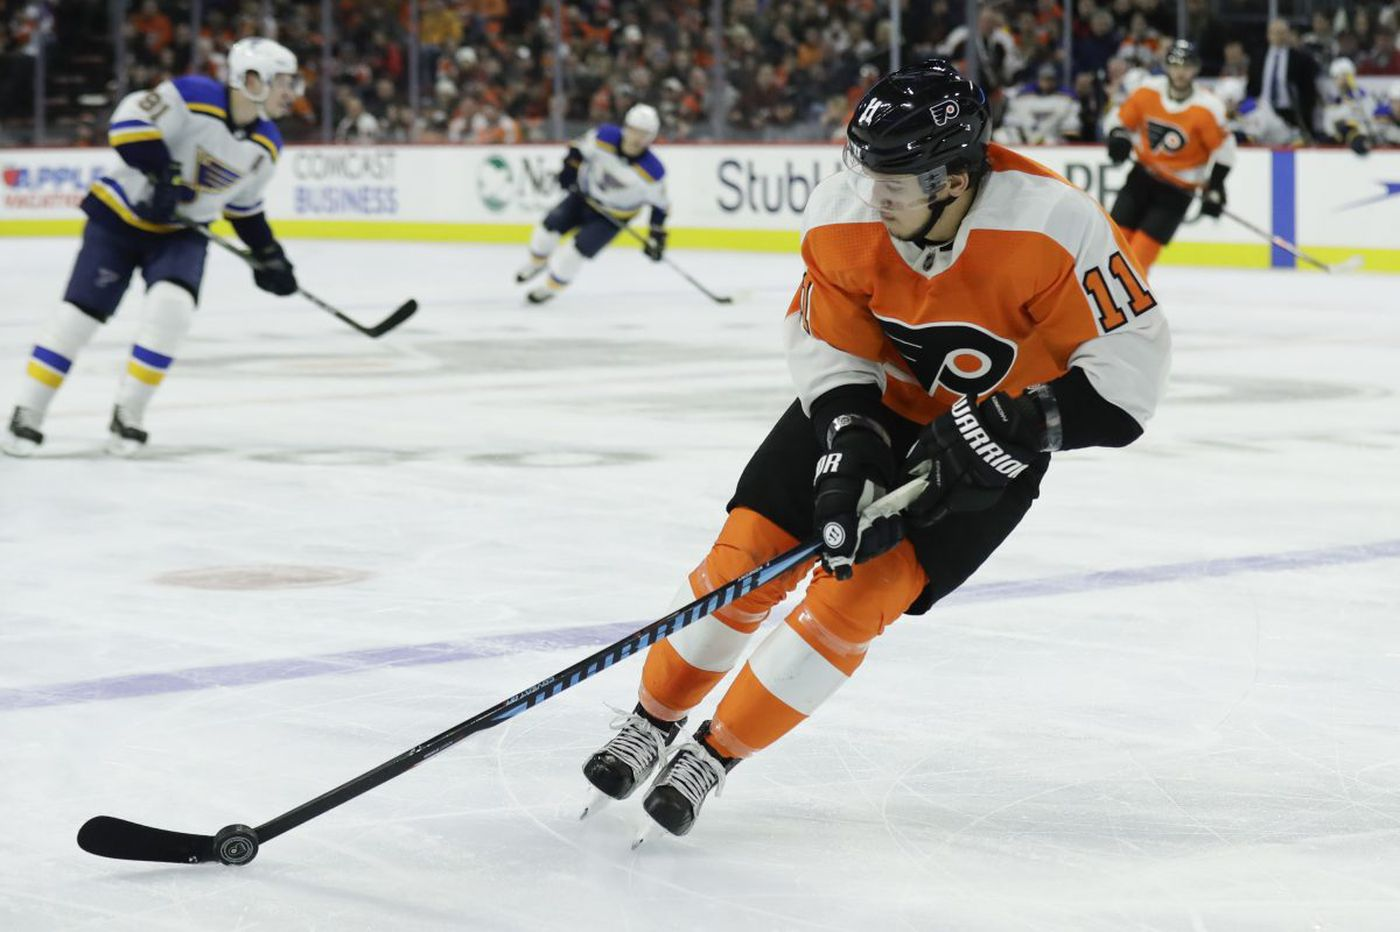 Flyers-Red Wings preview: Travis Konecny red-hot